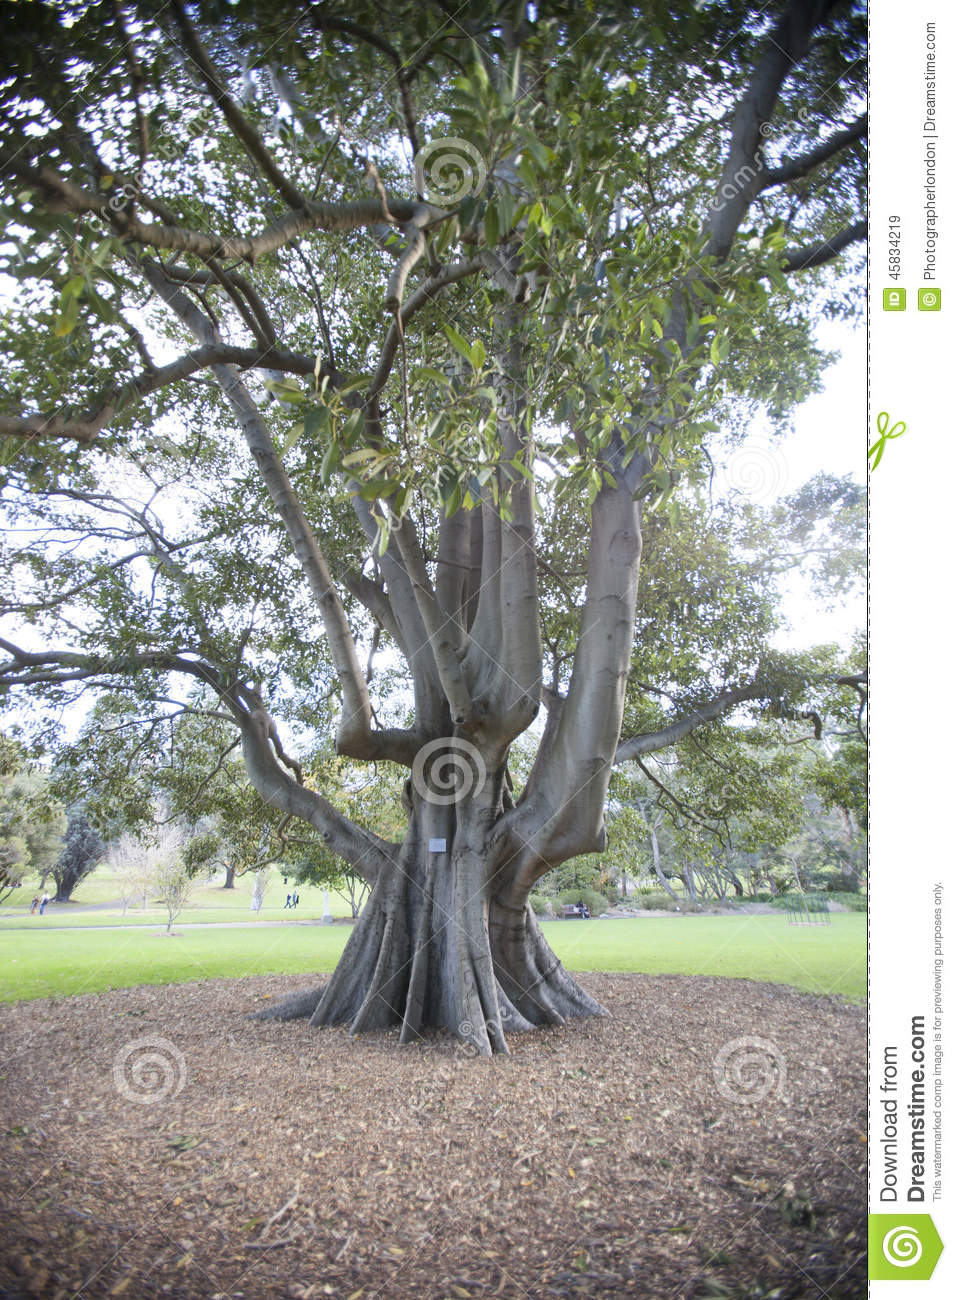 grand arbre dans le jardin botanique sydney australie photo stock image 45834219. Black Bedroom Furniture Sets. Home Design Ideas